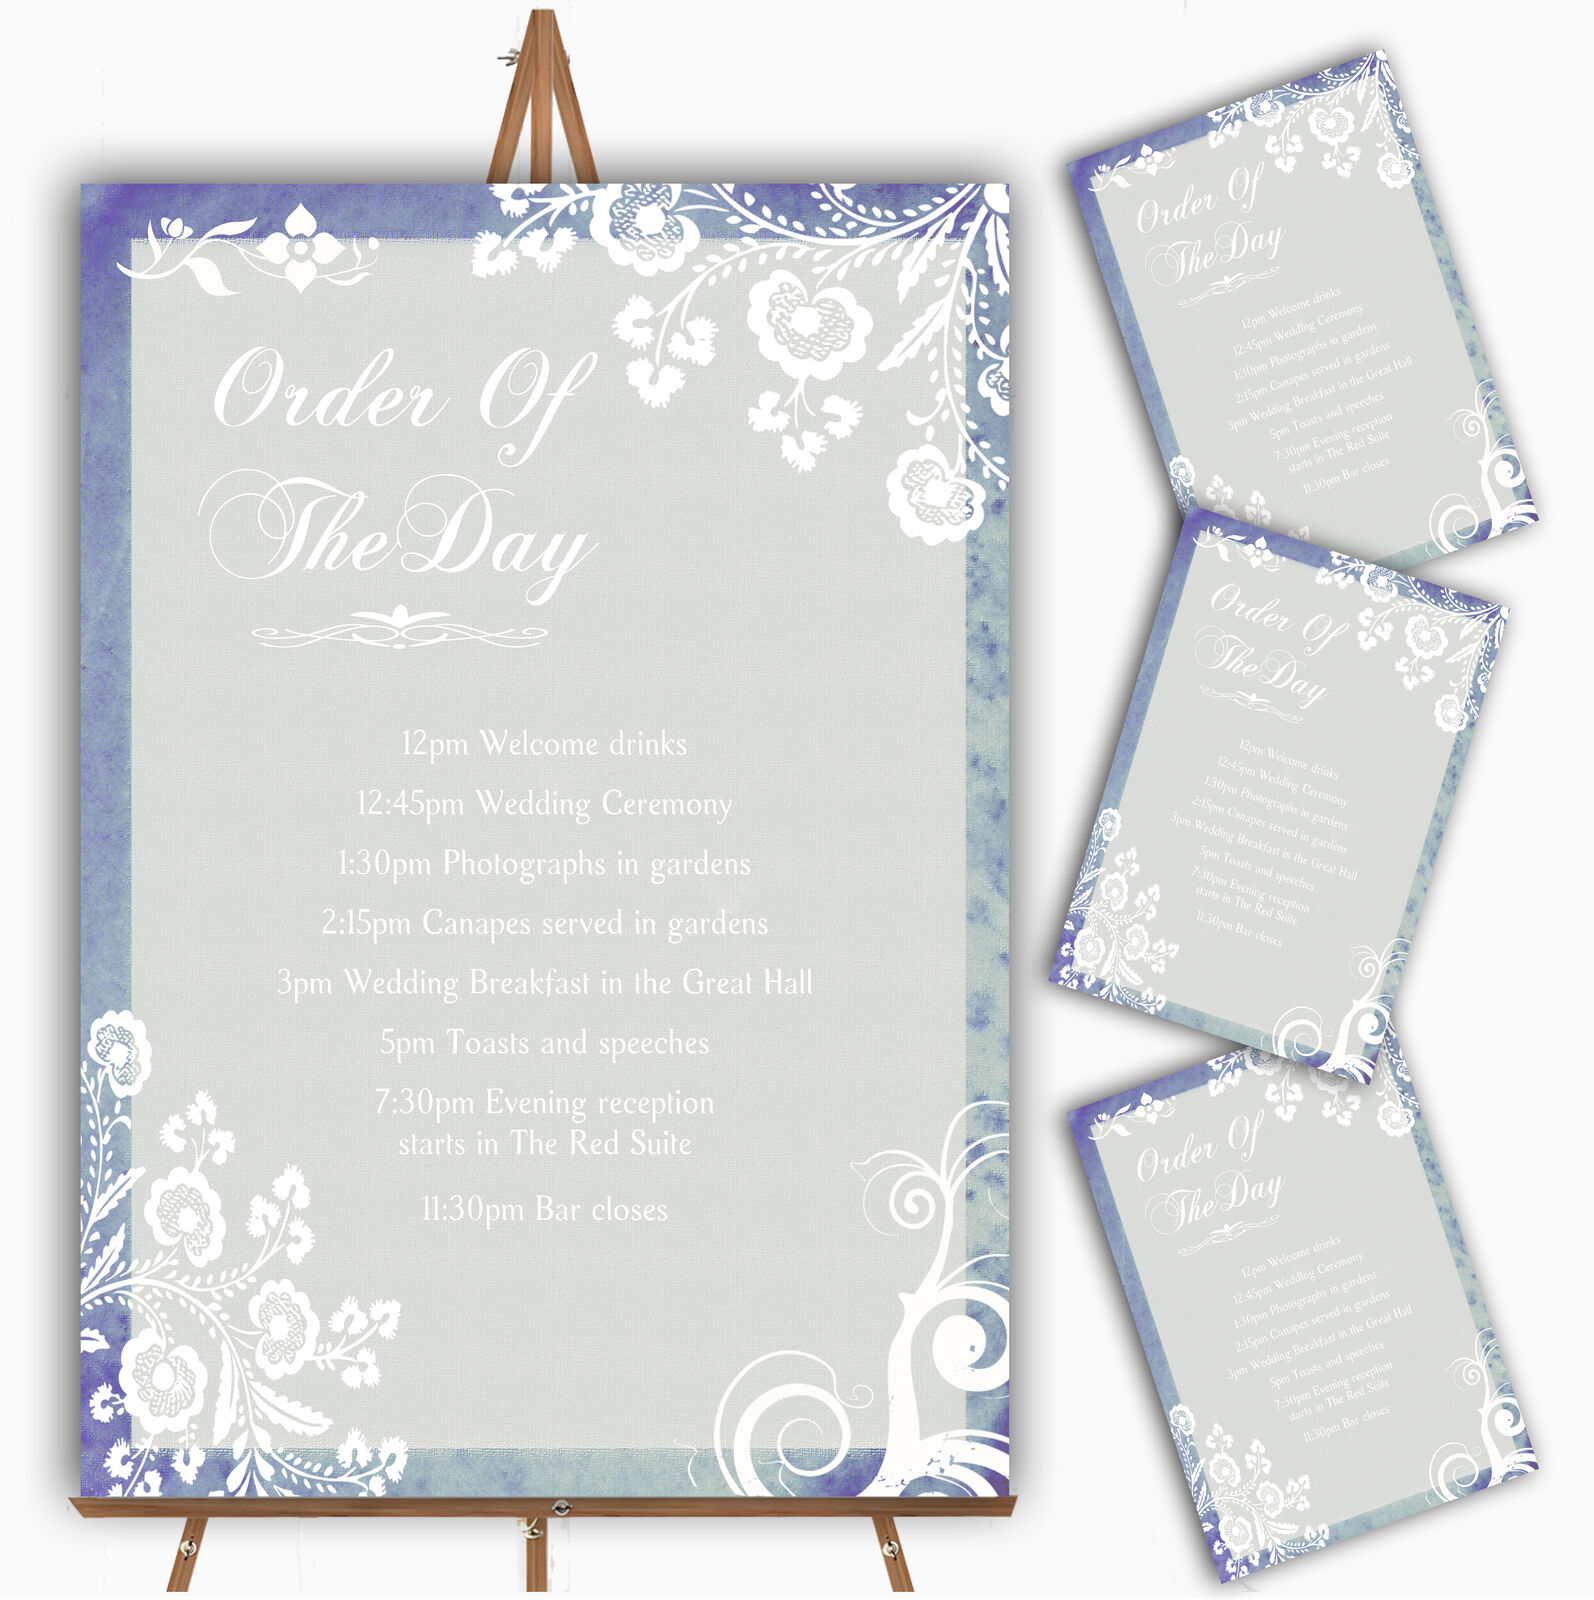 Rustic Blau Lace Personalised Wedding Order Of The Day Cards & Signs